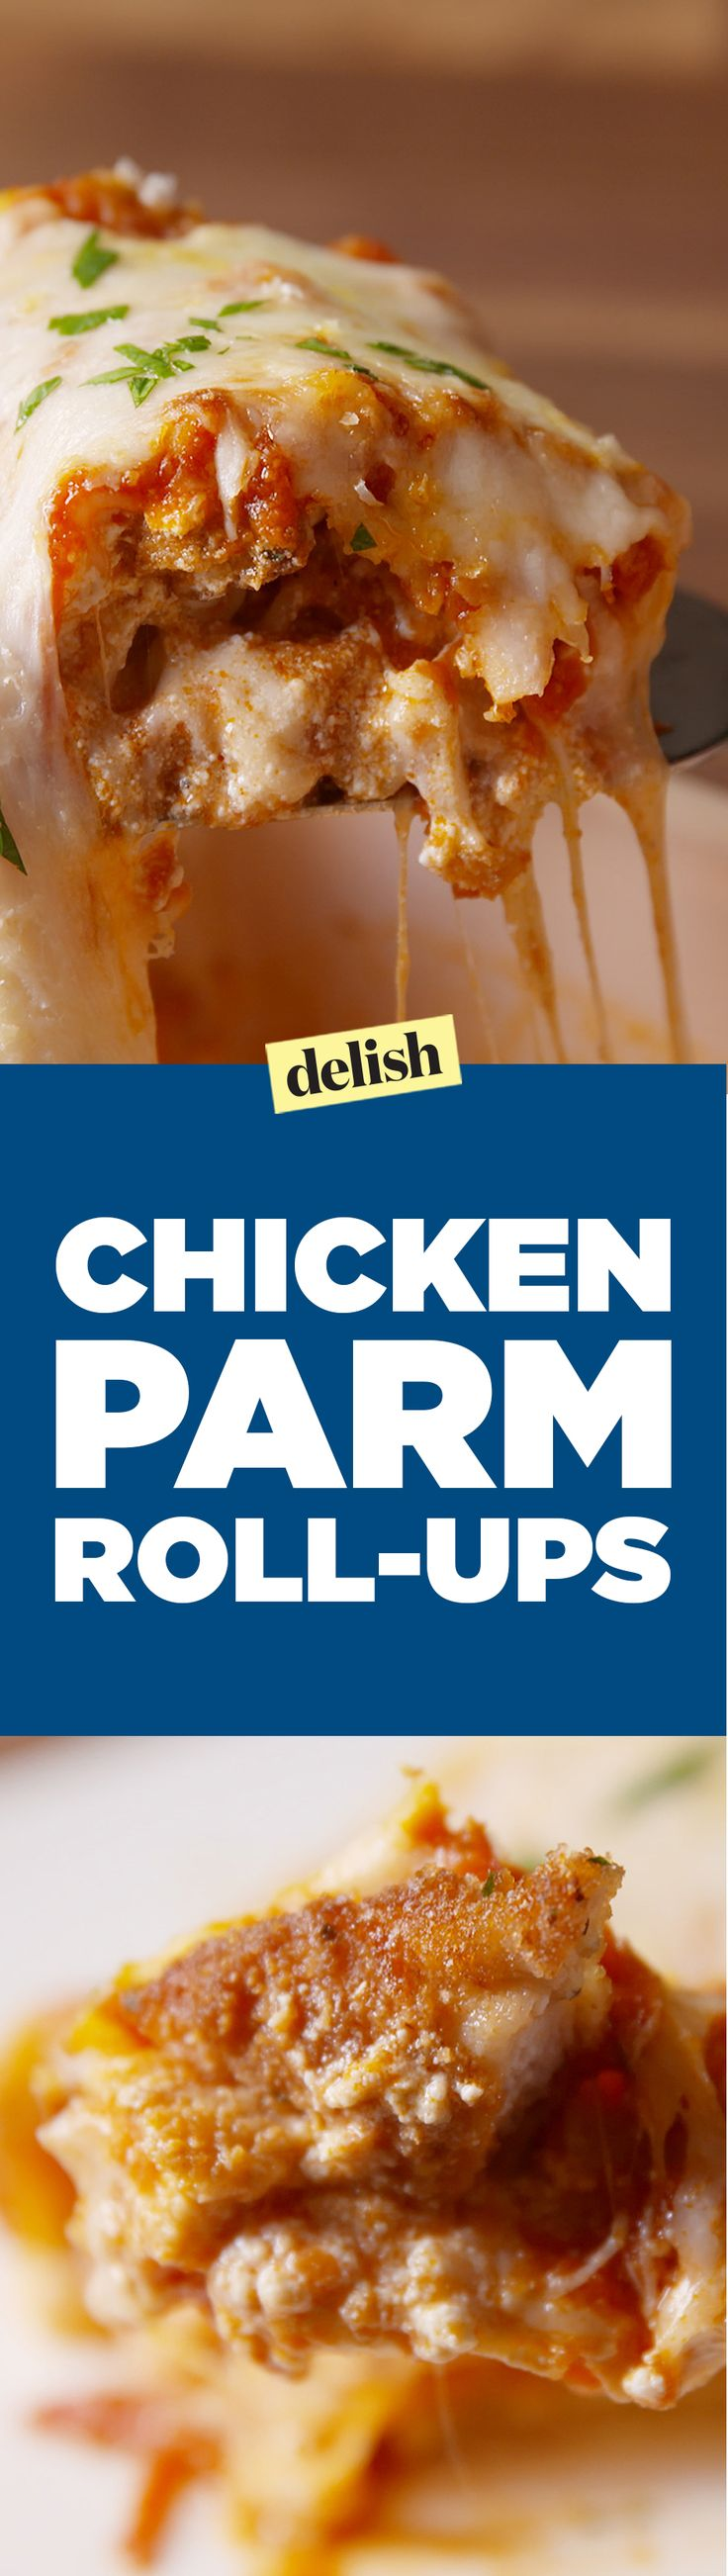 Chicken parm roll-ups are the smartest new way to use lasagna noodles. Get the recipe on Delish.com.